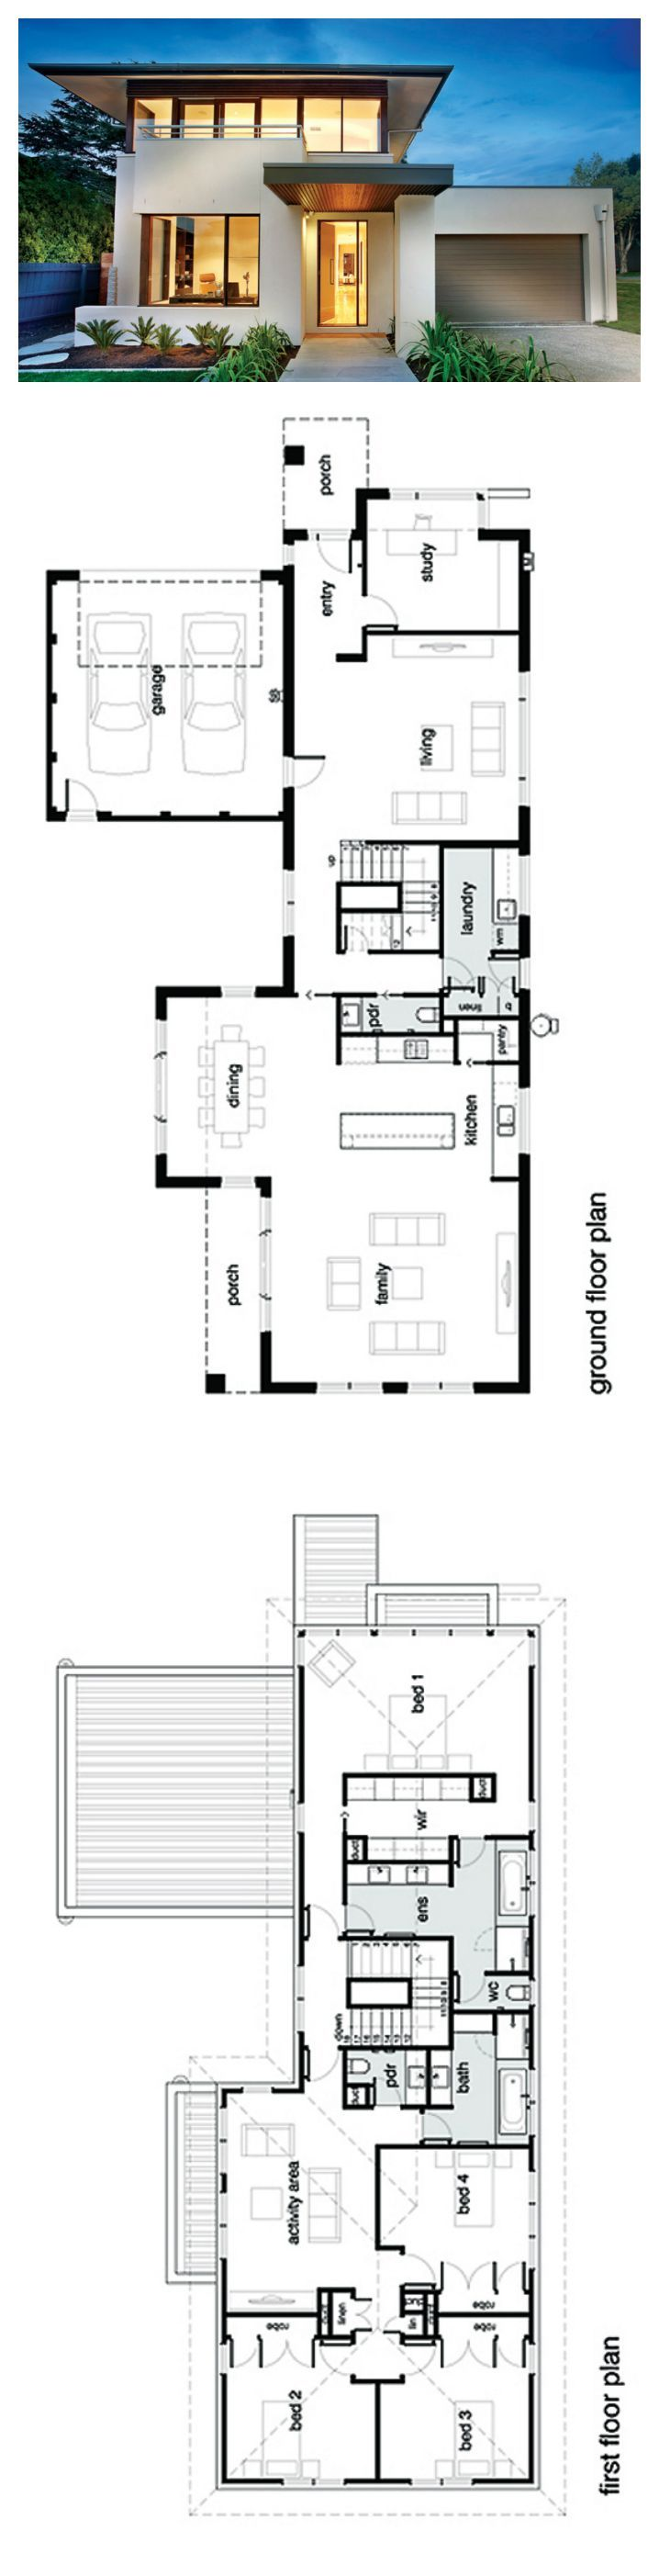 Modern Floor Plans Of Best 25 Modern House Plans Ideas On Pinterest Modern